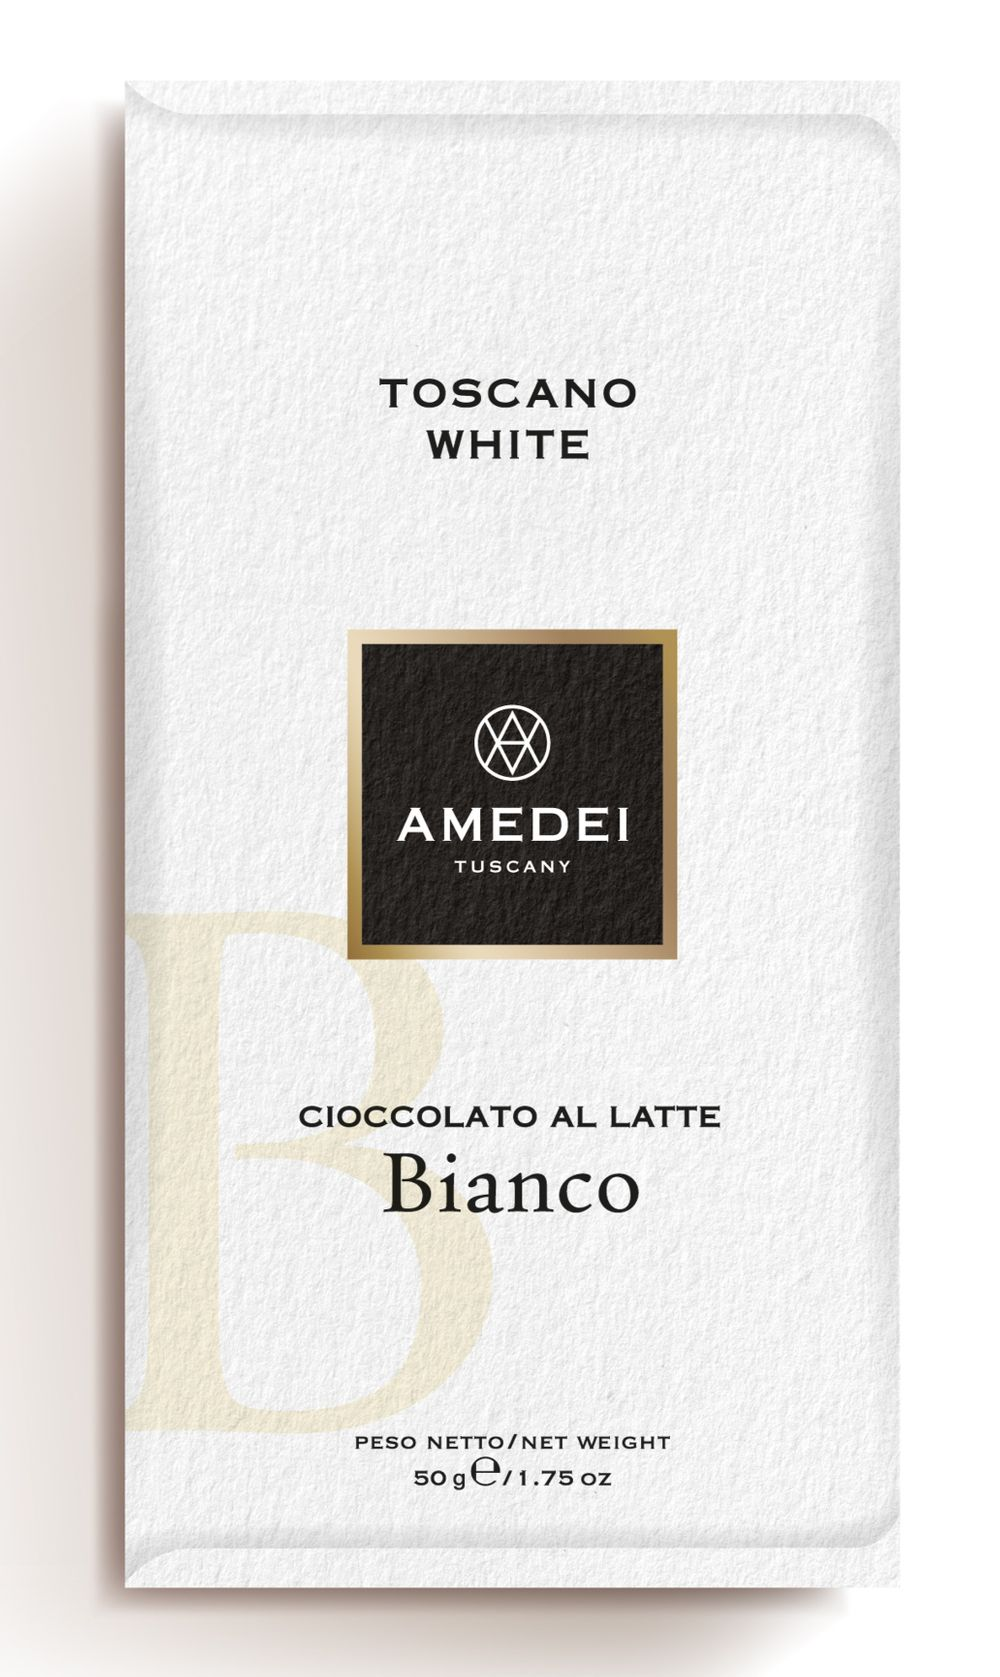 Toscano White Bianco White Chocolate